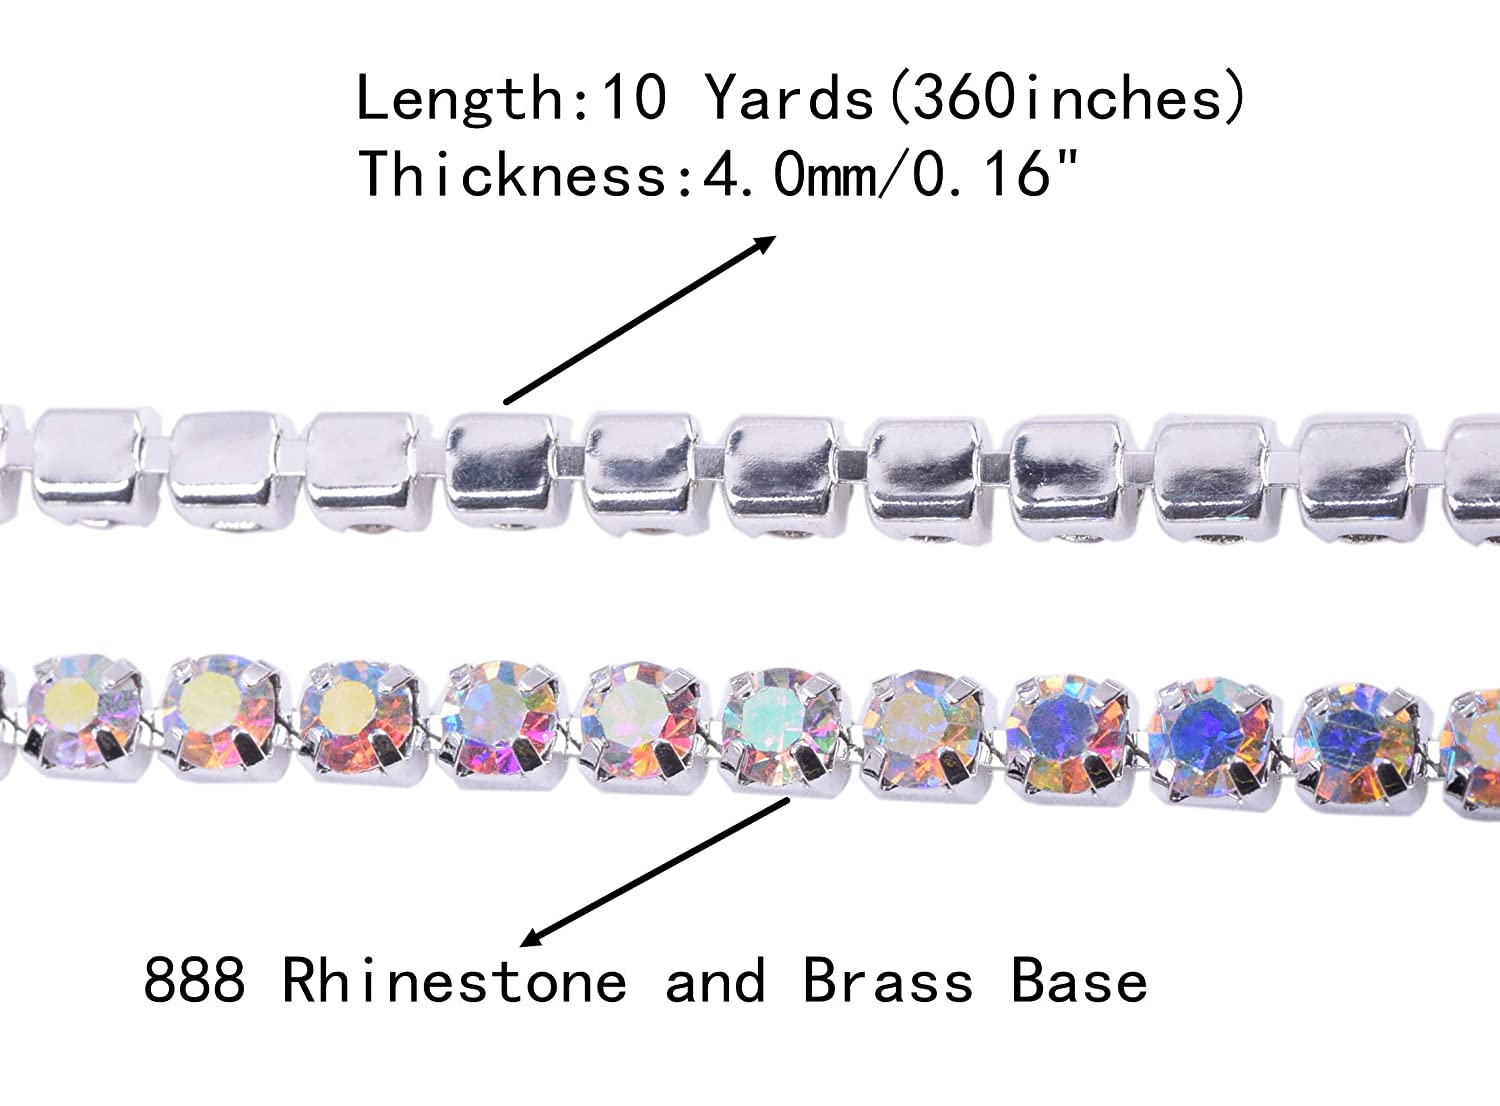 KAOYOO 10 Yards Crystal Rhinestone Close Chain Trim with Emerald Beads SS16//4.0mm//0.16 Golden Chain for DIY Decoration